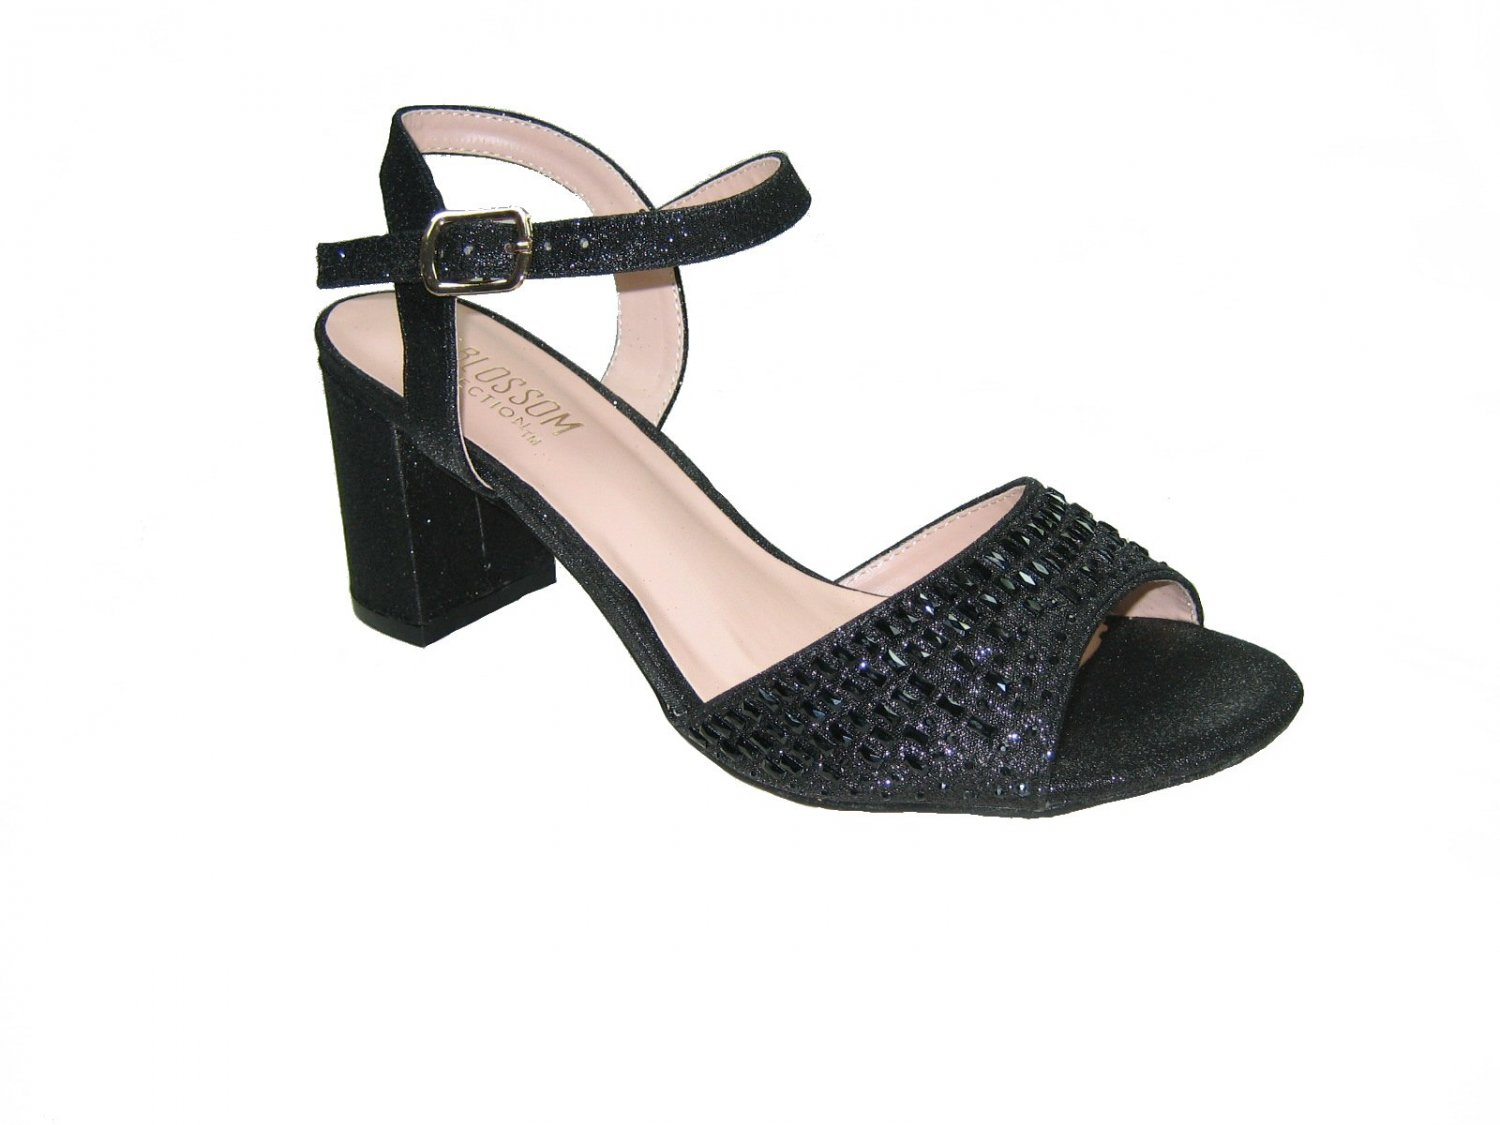 Blossom amber-9 strappy black sparkle shimmer 3 inch block heel party sandals size 9